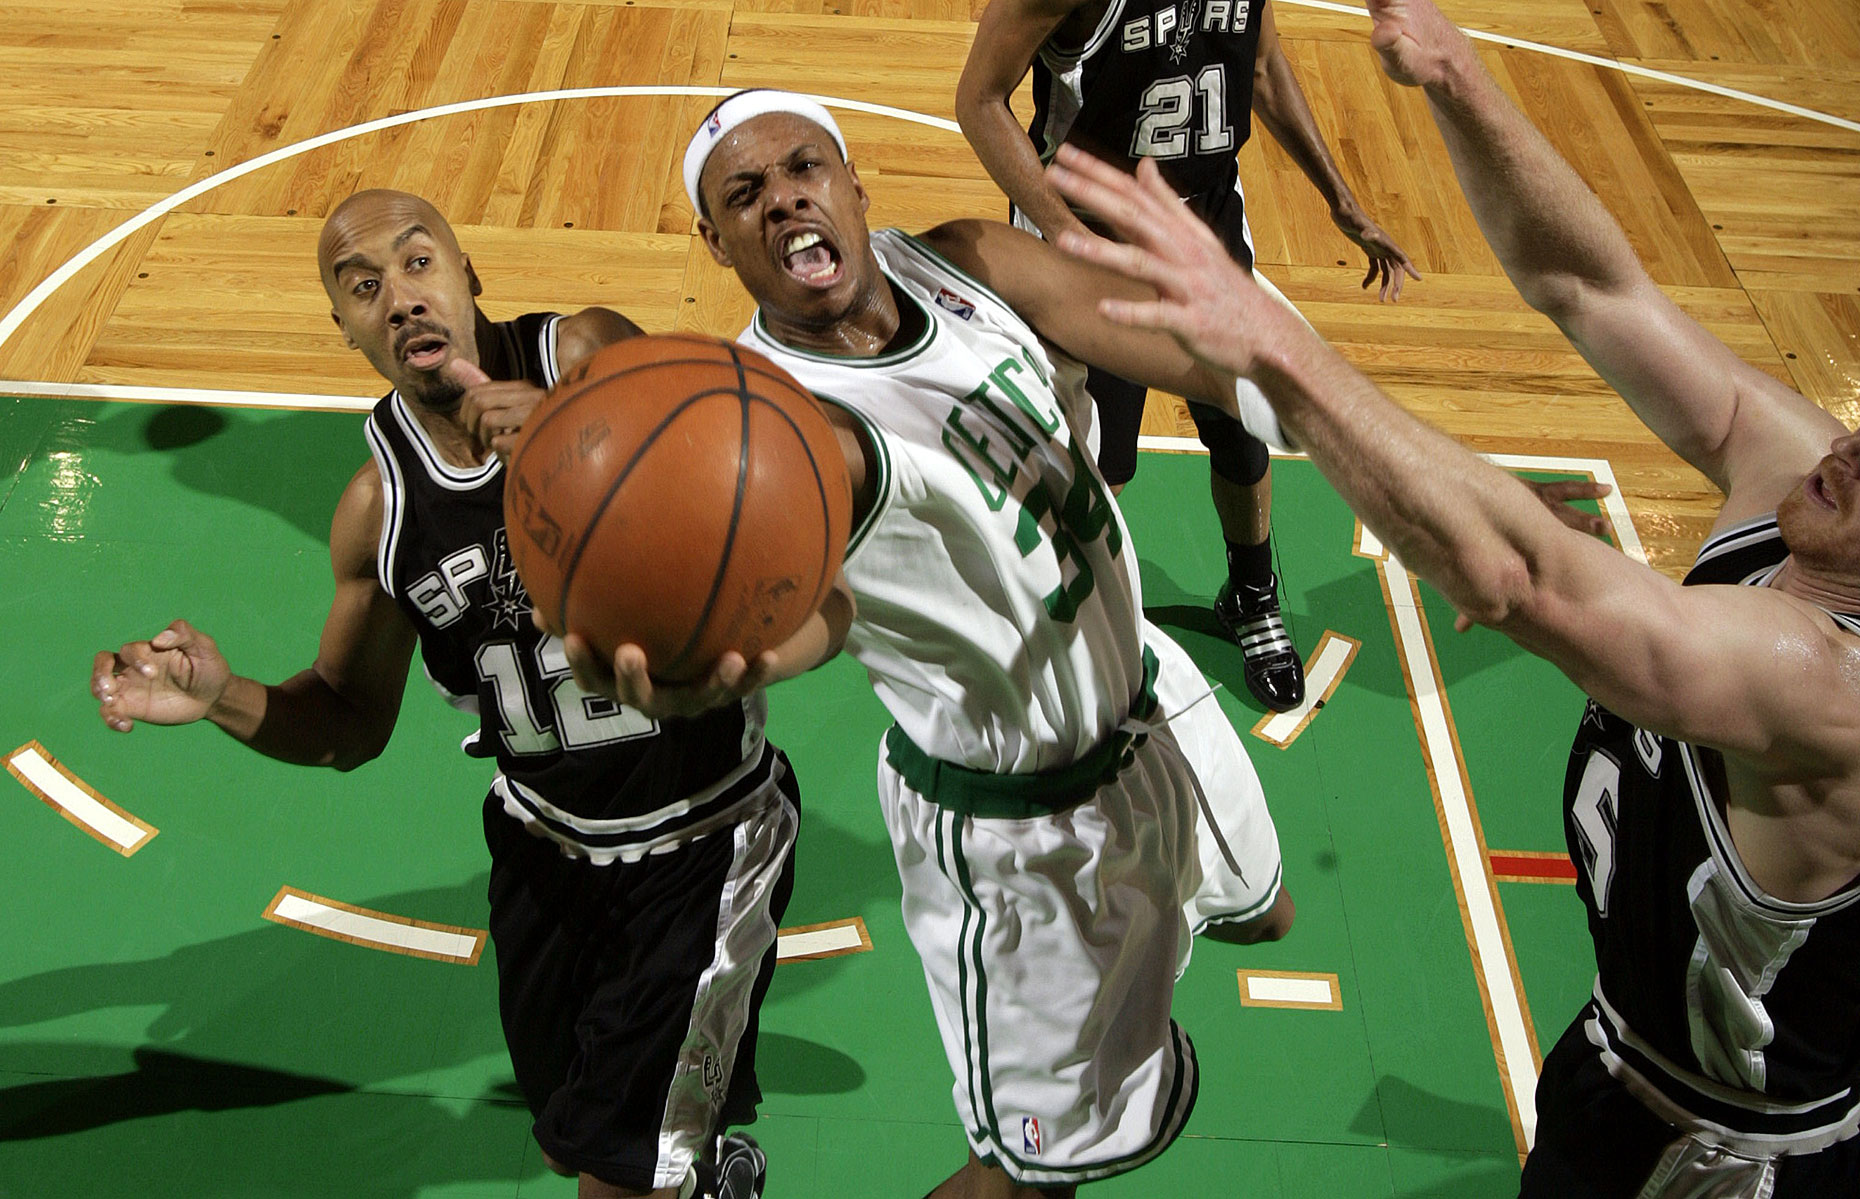 In an elevated view Boston guard Paul Pierce scores against San Antonio Spurs.